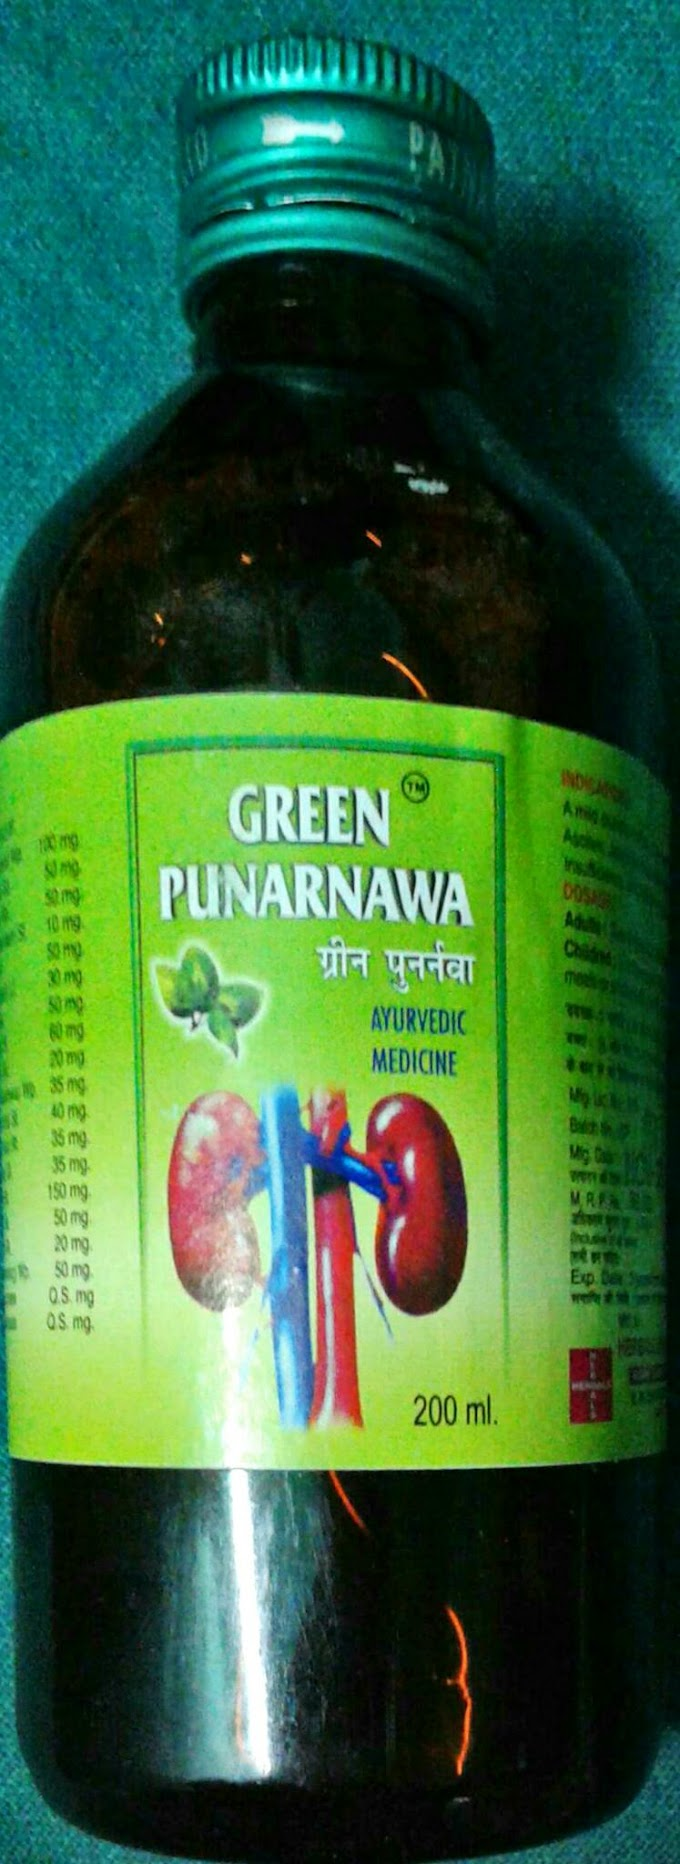 Green Punarnava Syrup: Ingredients, Indications, Dosages, Contraindications,  Presentation